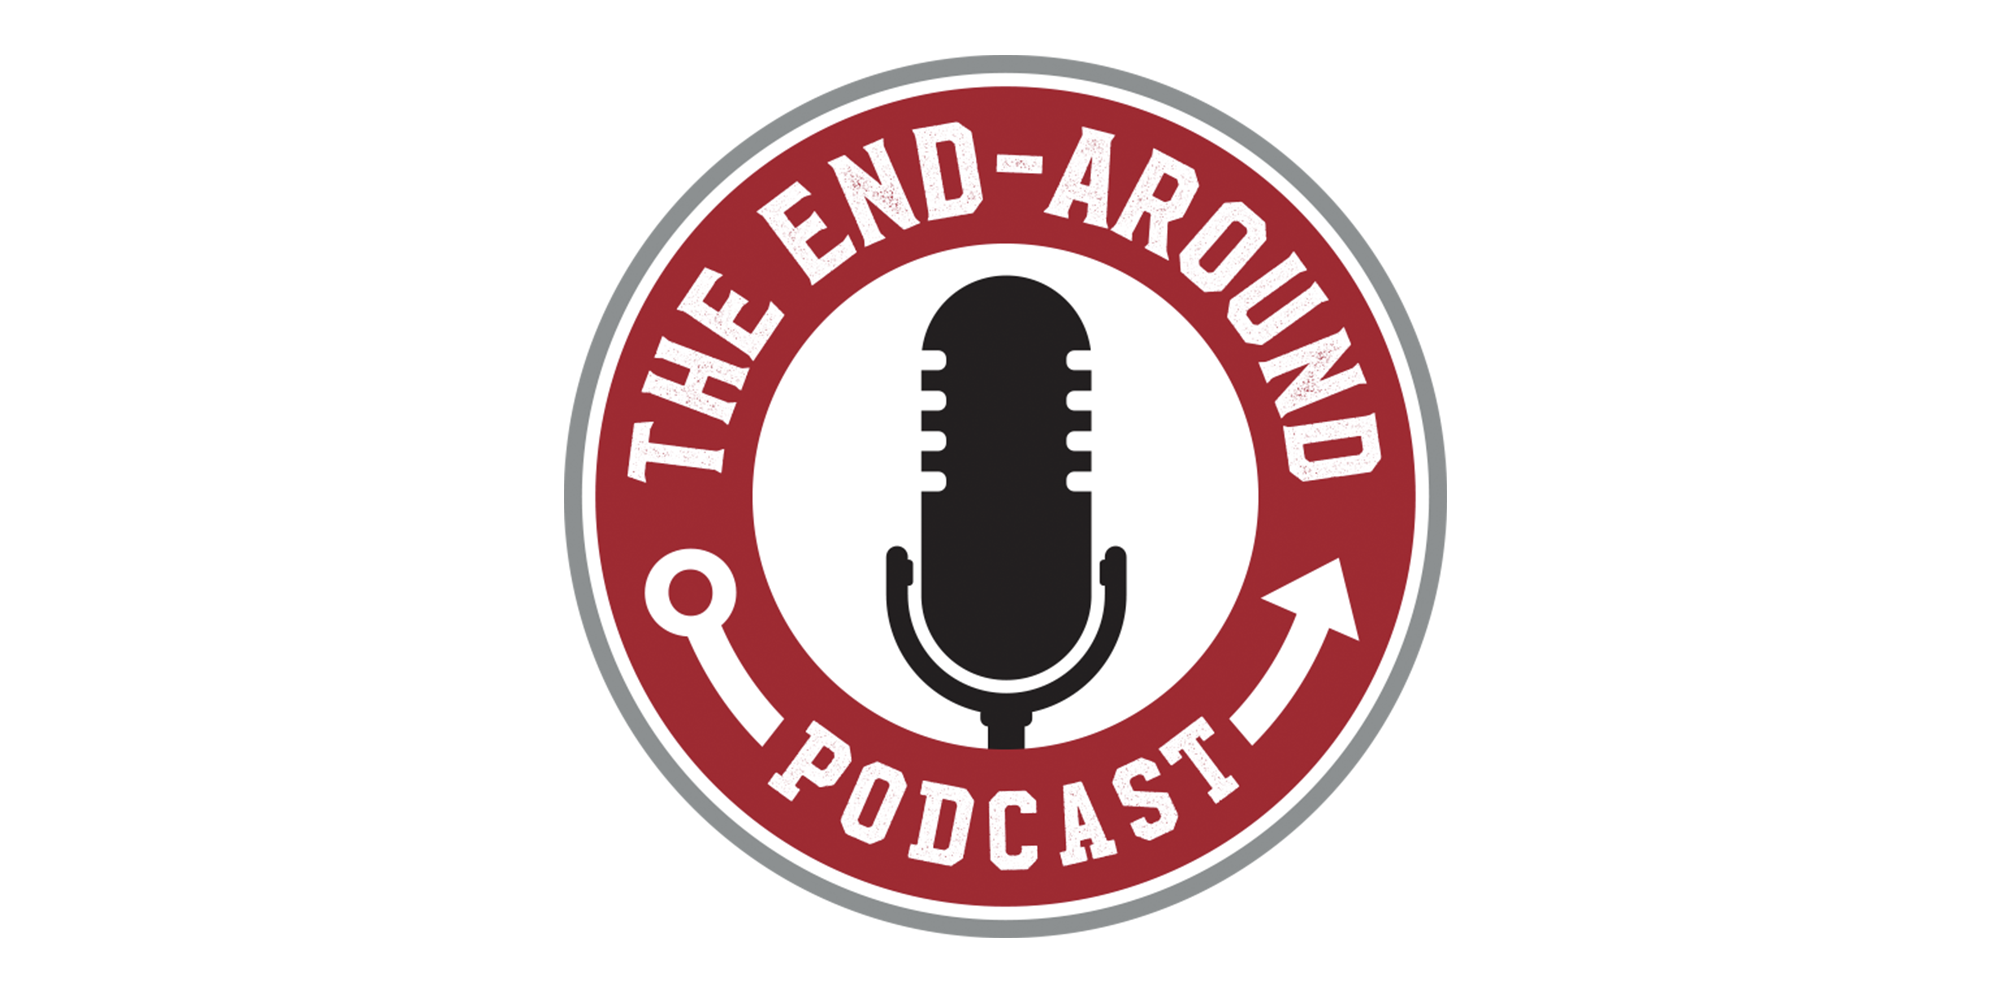 The End-Around